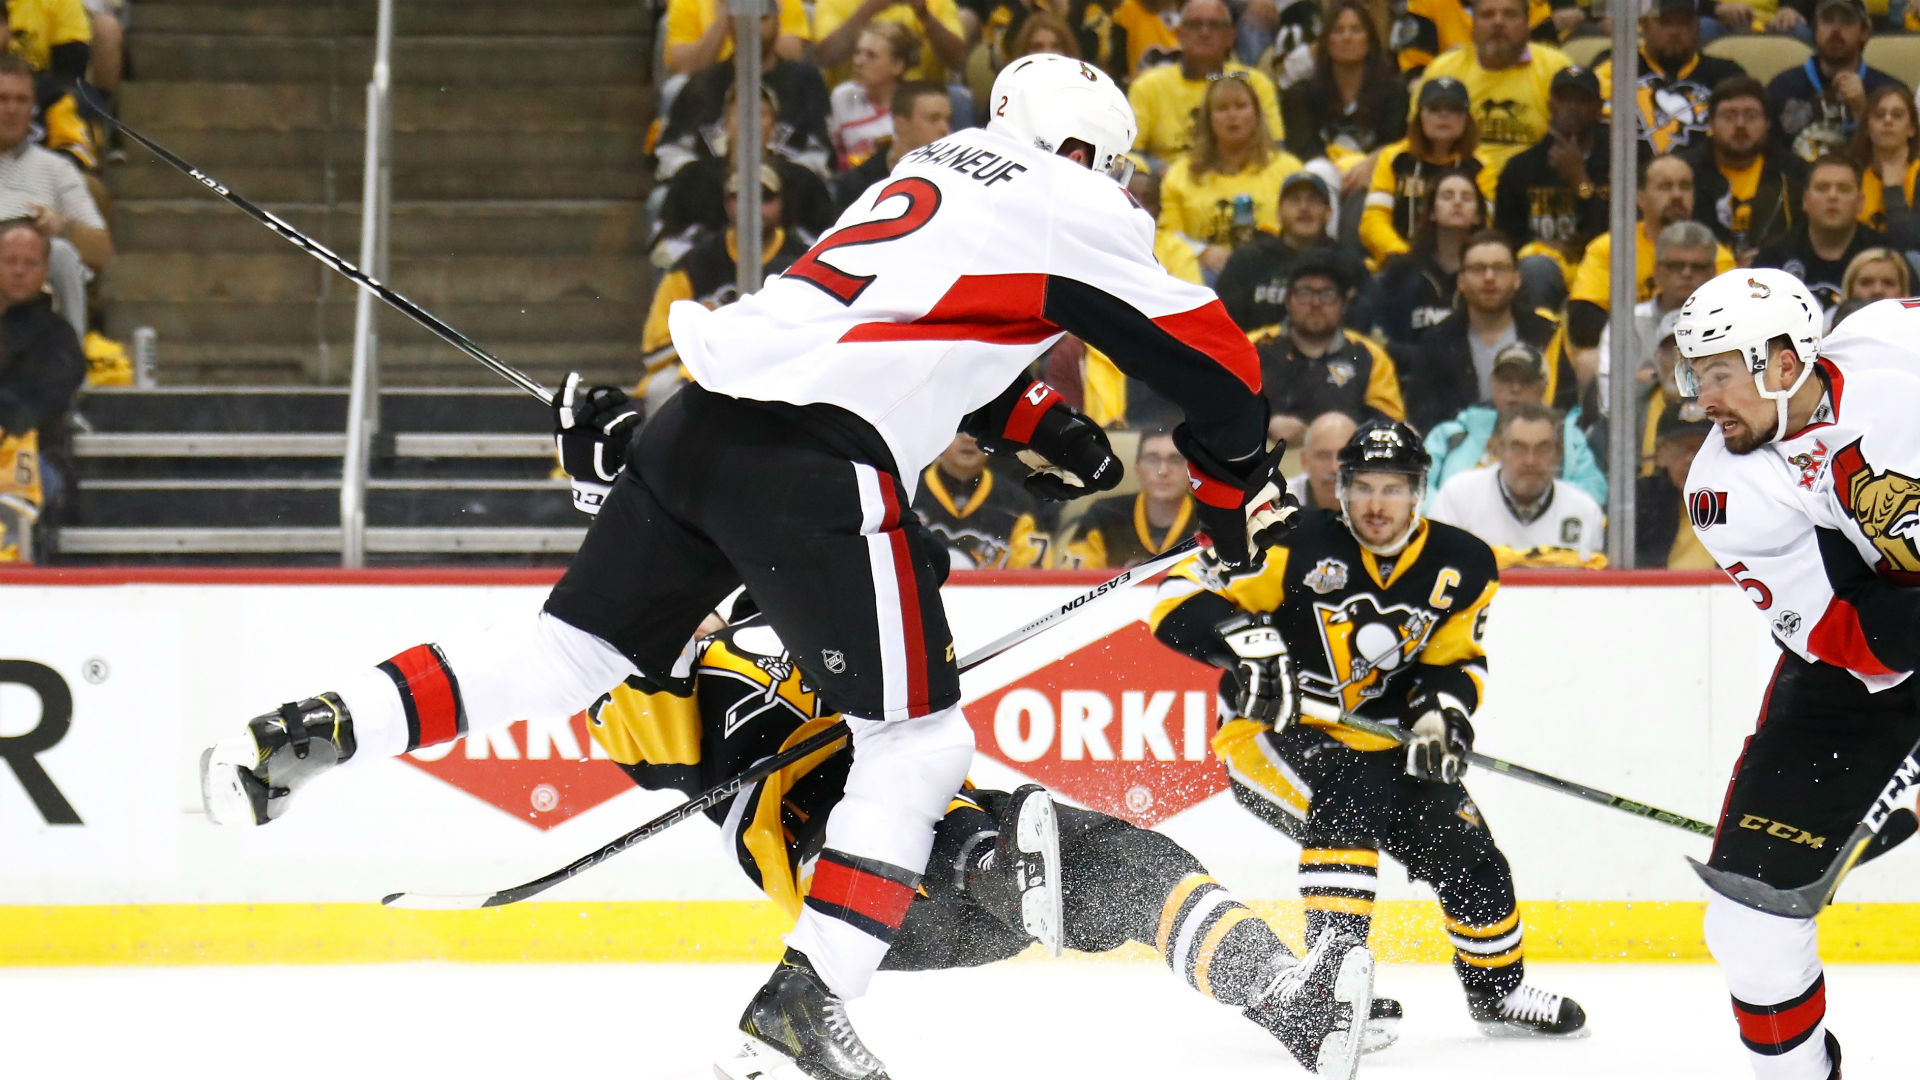 Penguins forward Bryan Rust injured on high hit from Dion Phaneuf